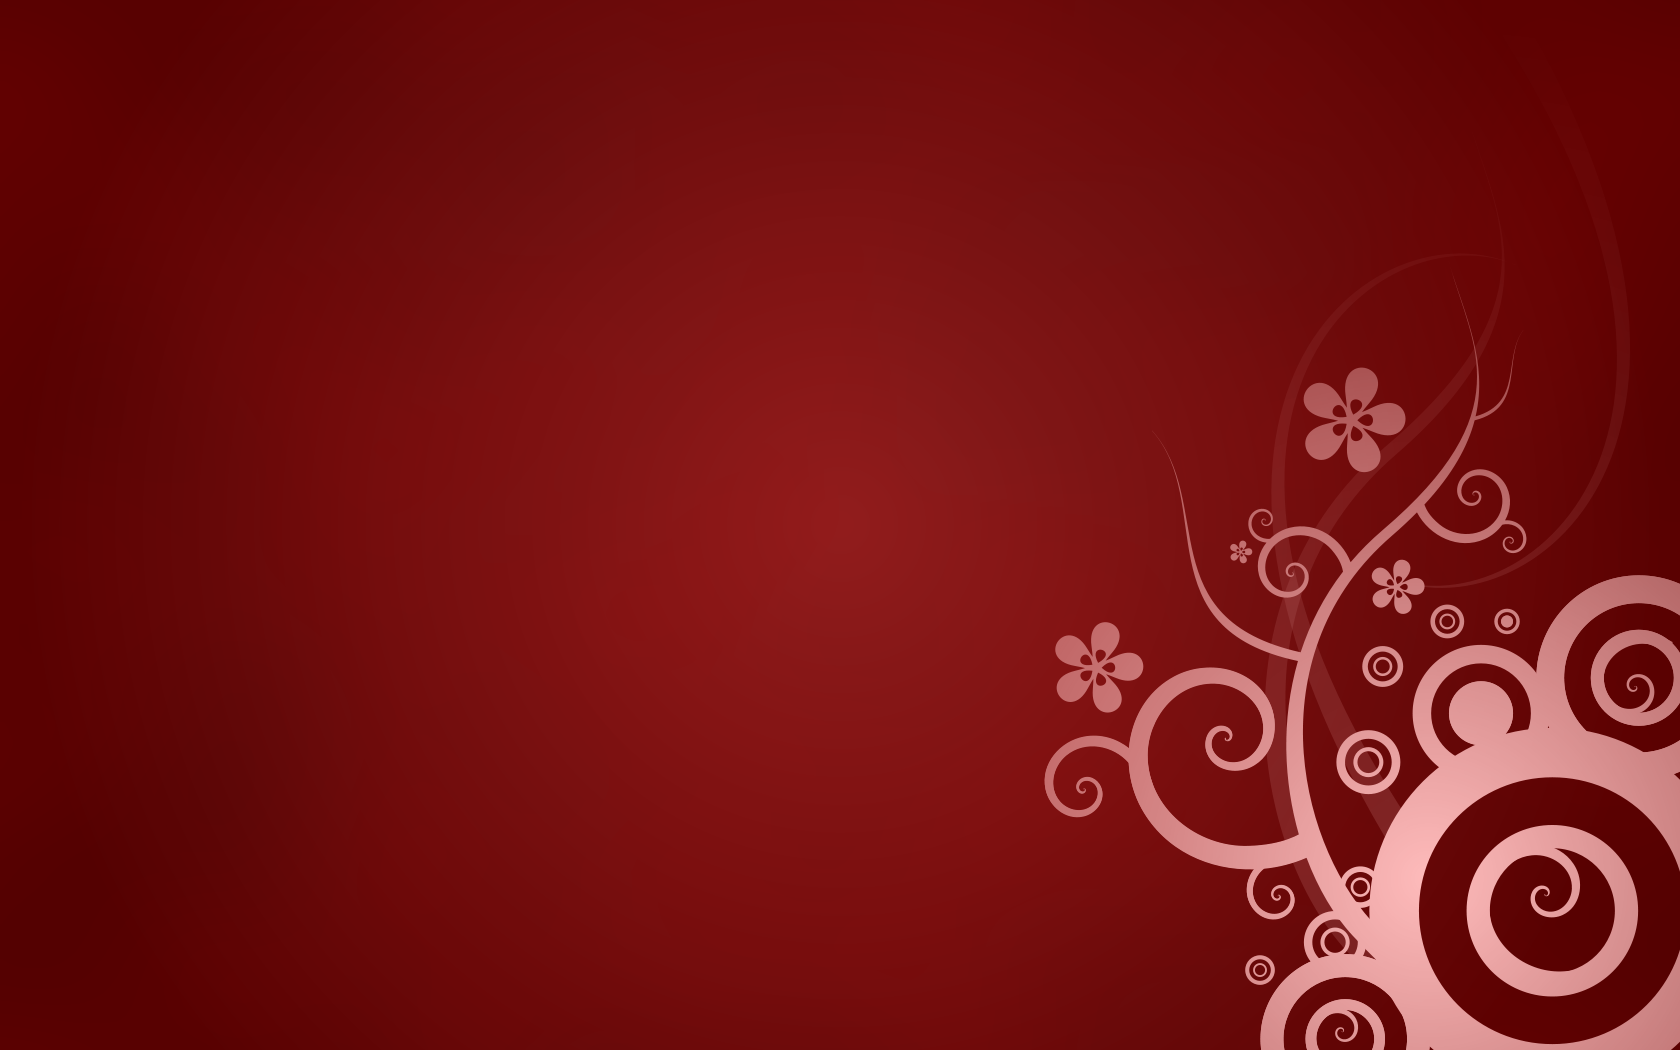 1680x1050-red.png